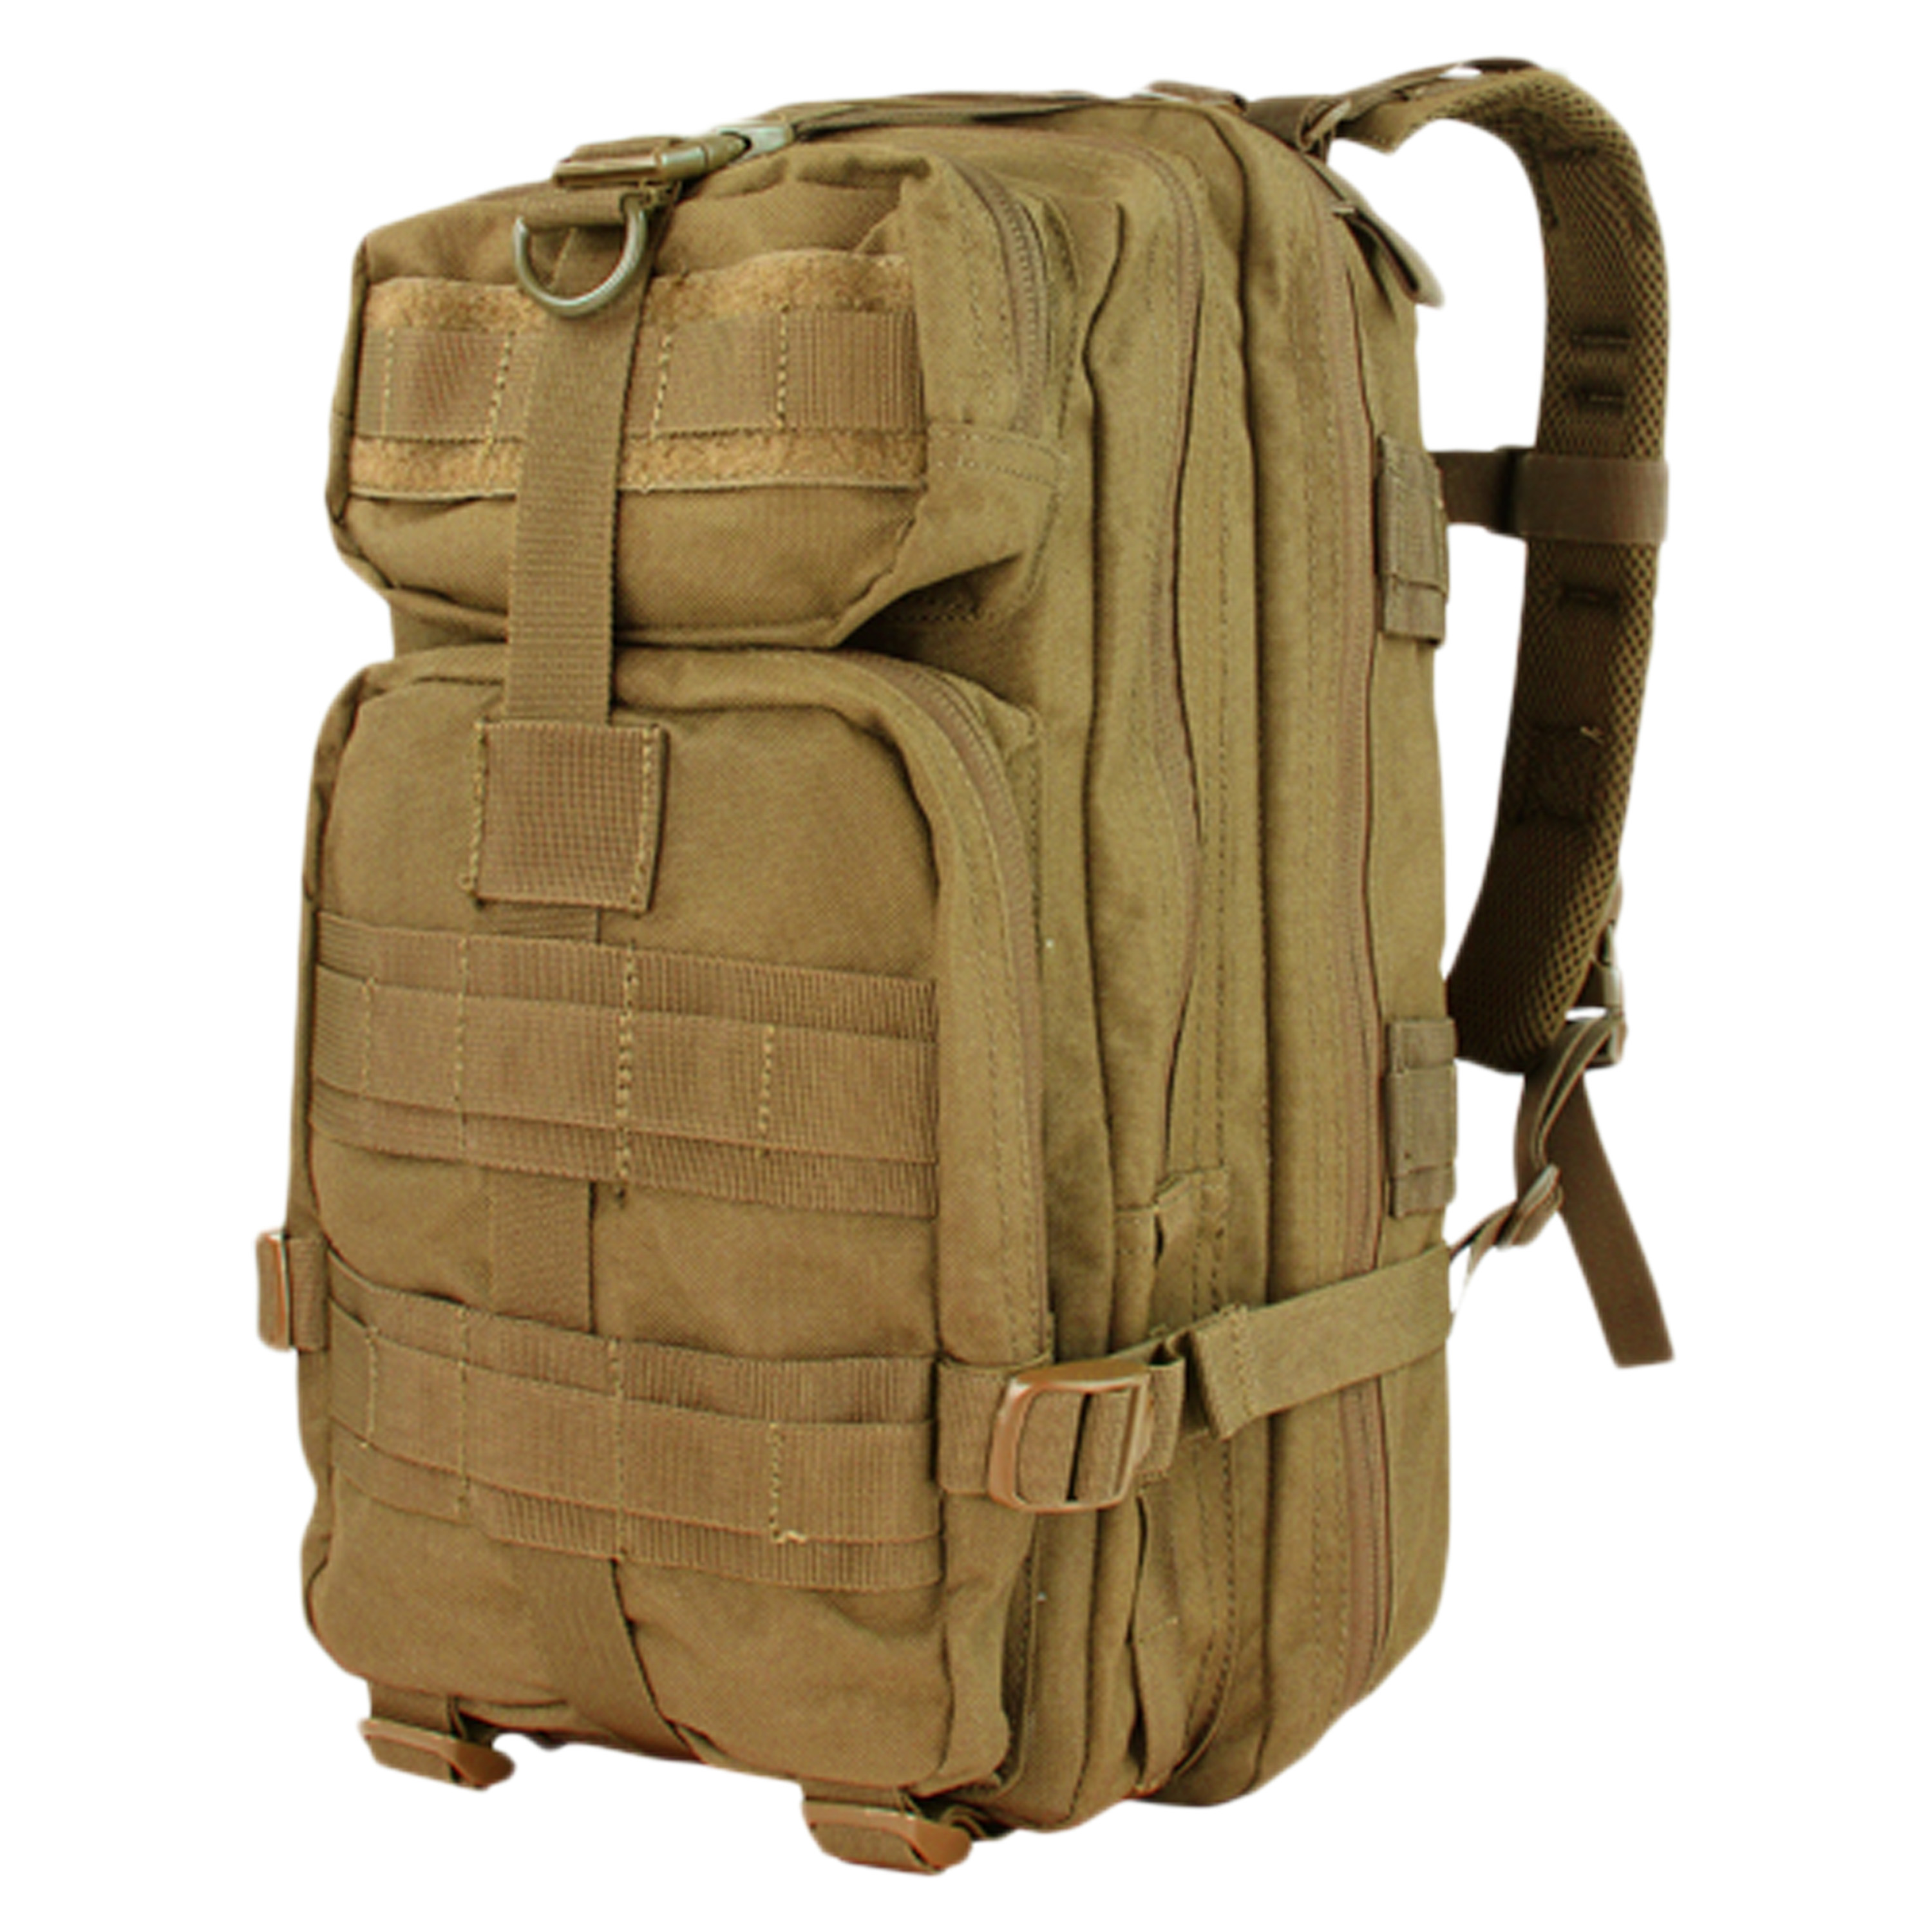 Mochila Condor Assault Pack Compact coyote marrón